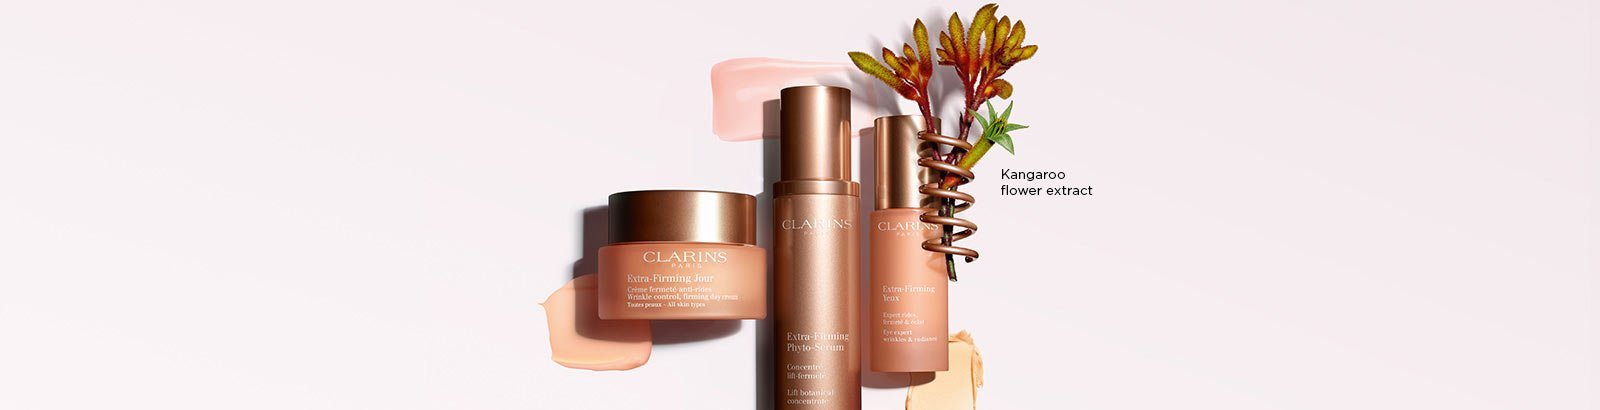 Clarins: Skin Care, Make-Up, Body Care - Clarins